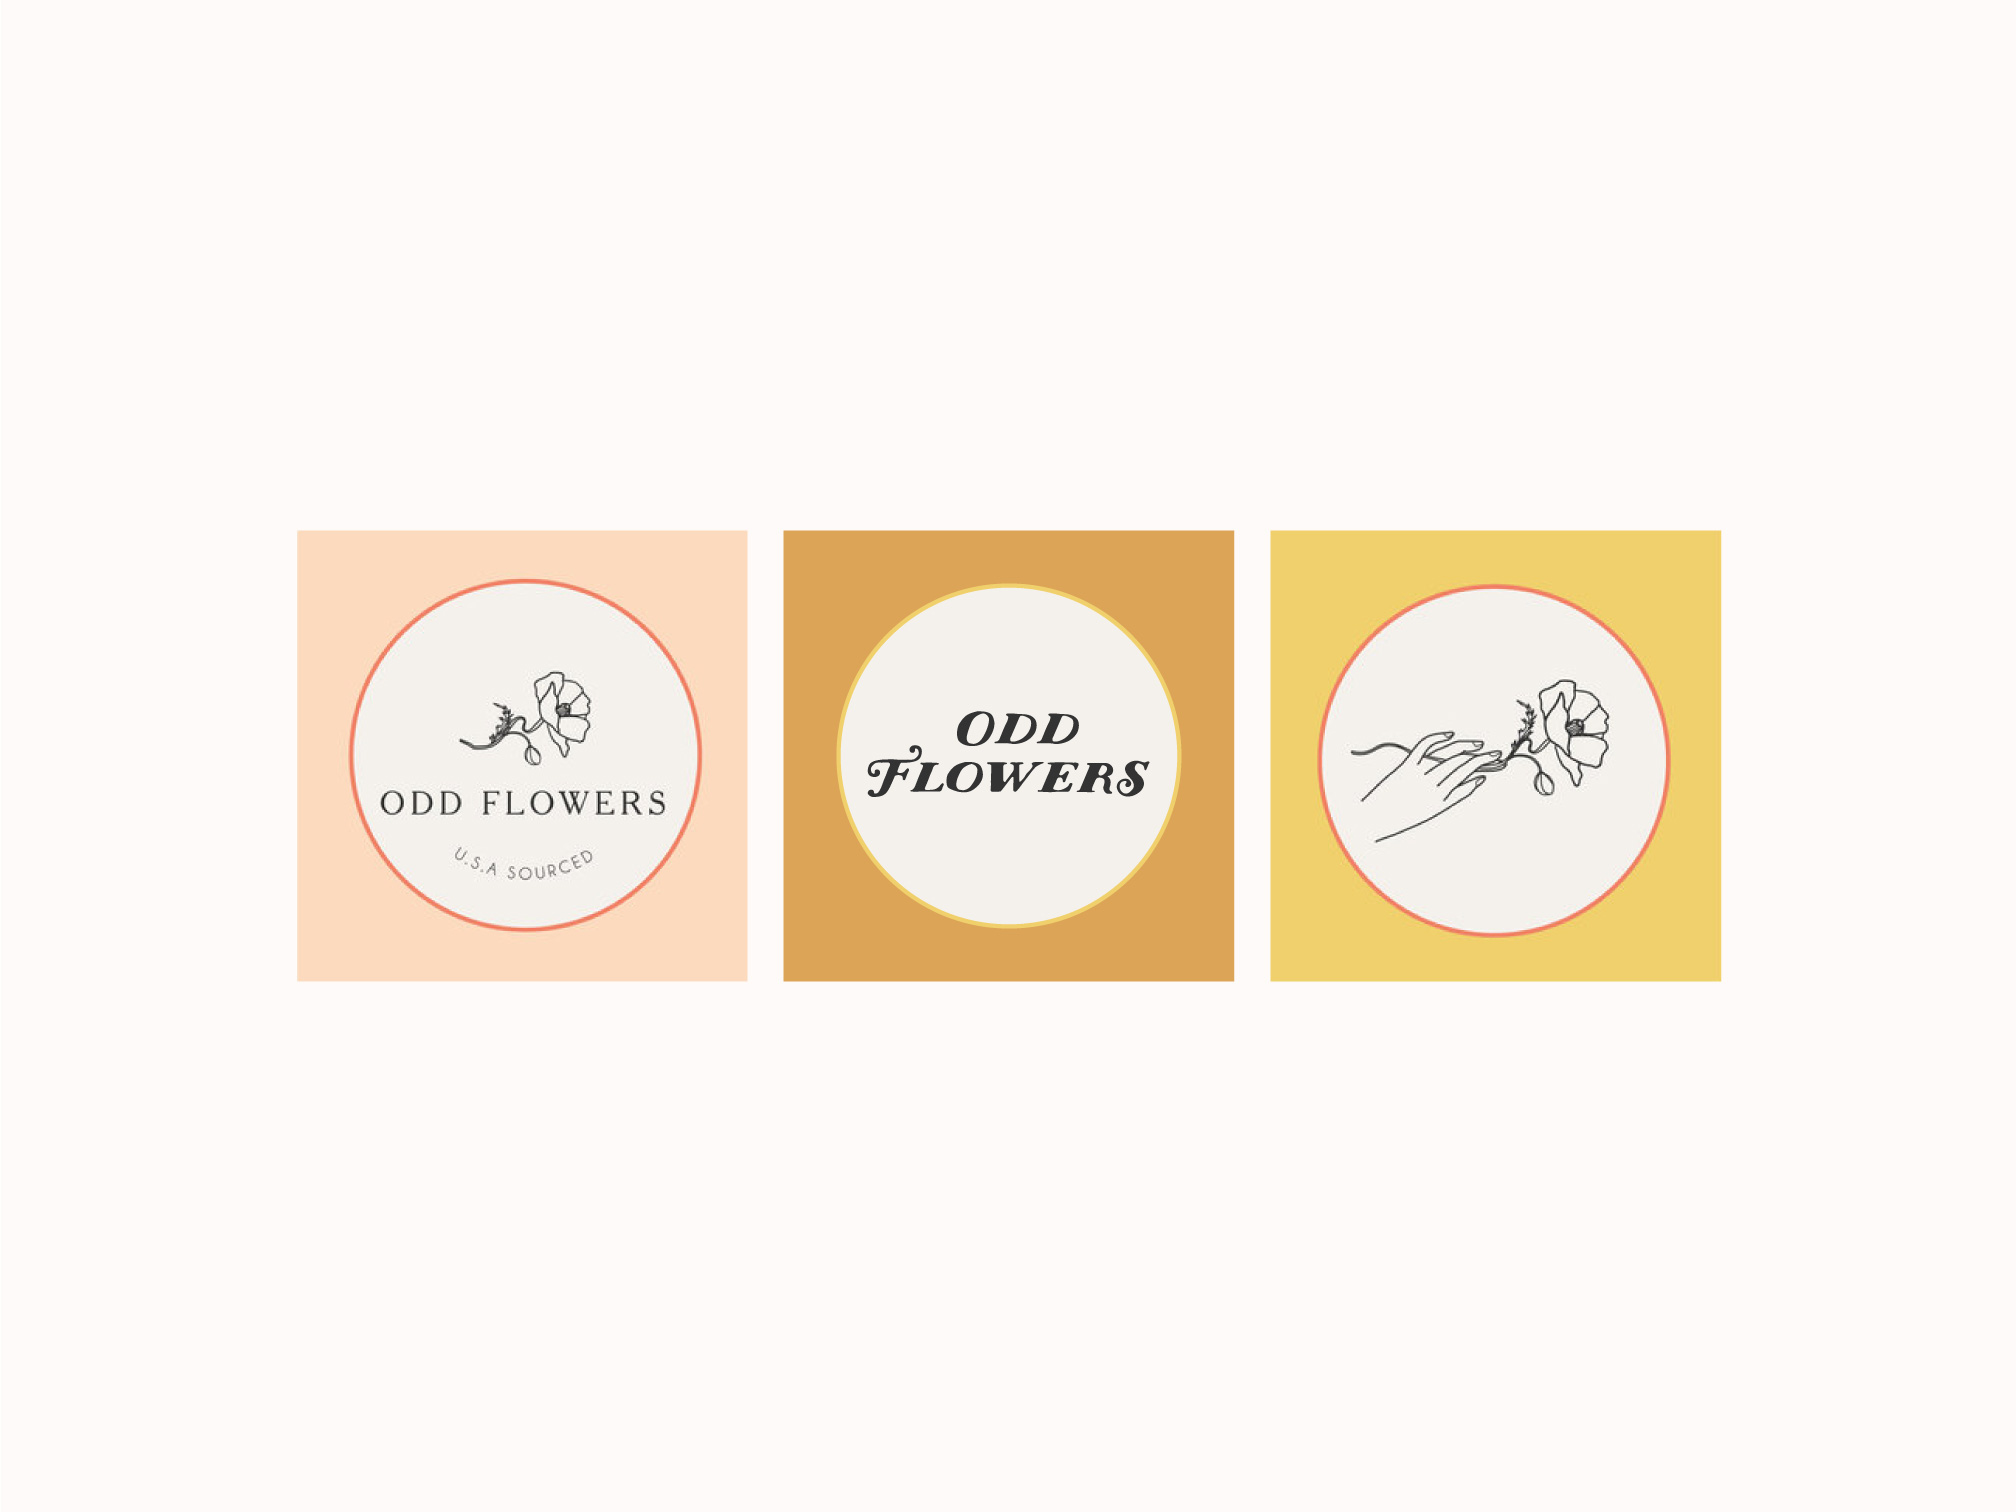 odd flowers logo sticker designs